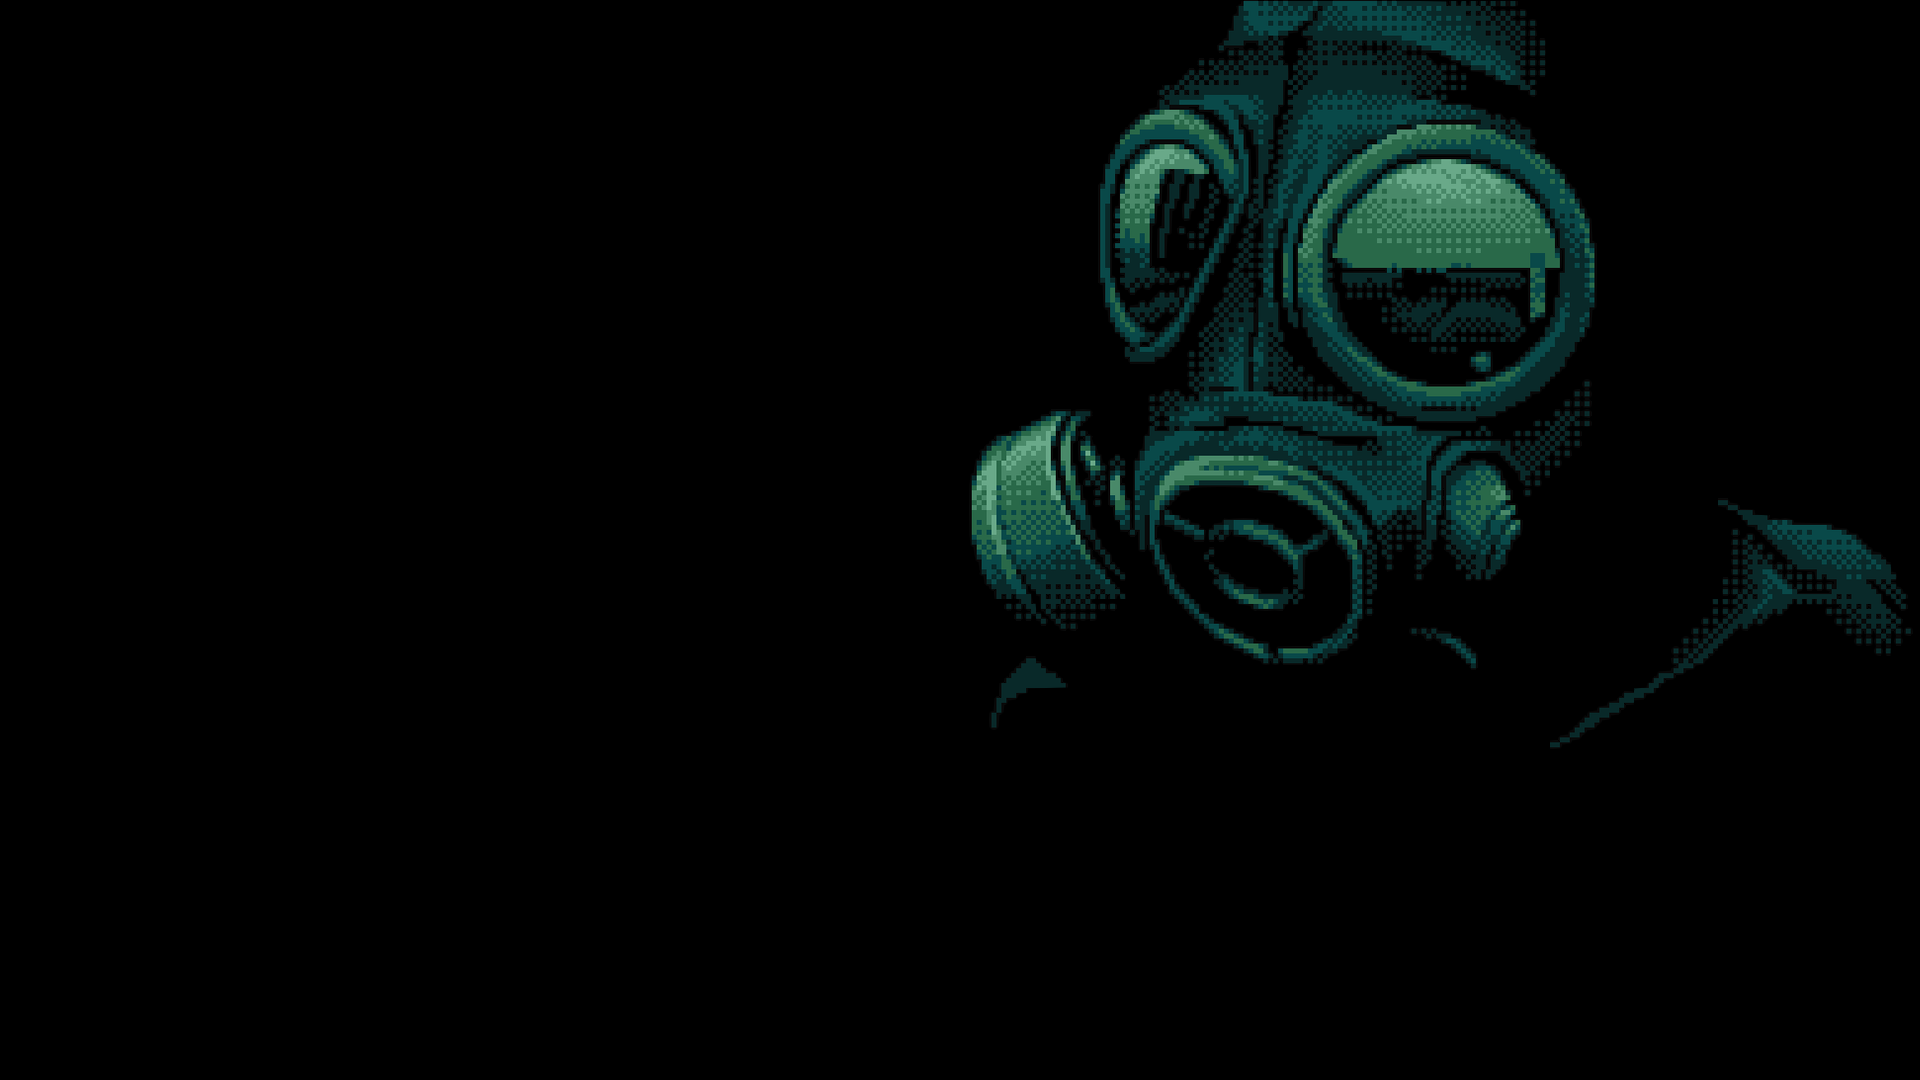 Pixelated Counter Terrorist Cs Go Wallpapers And Backgrounds